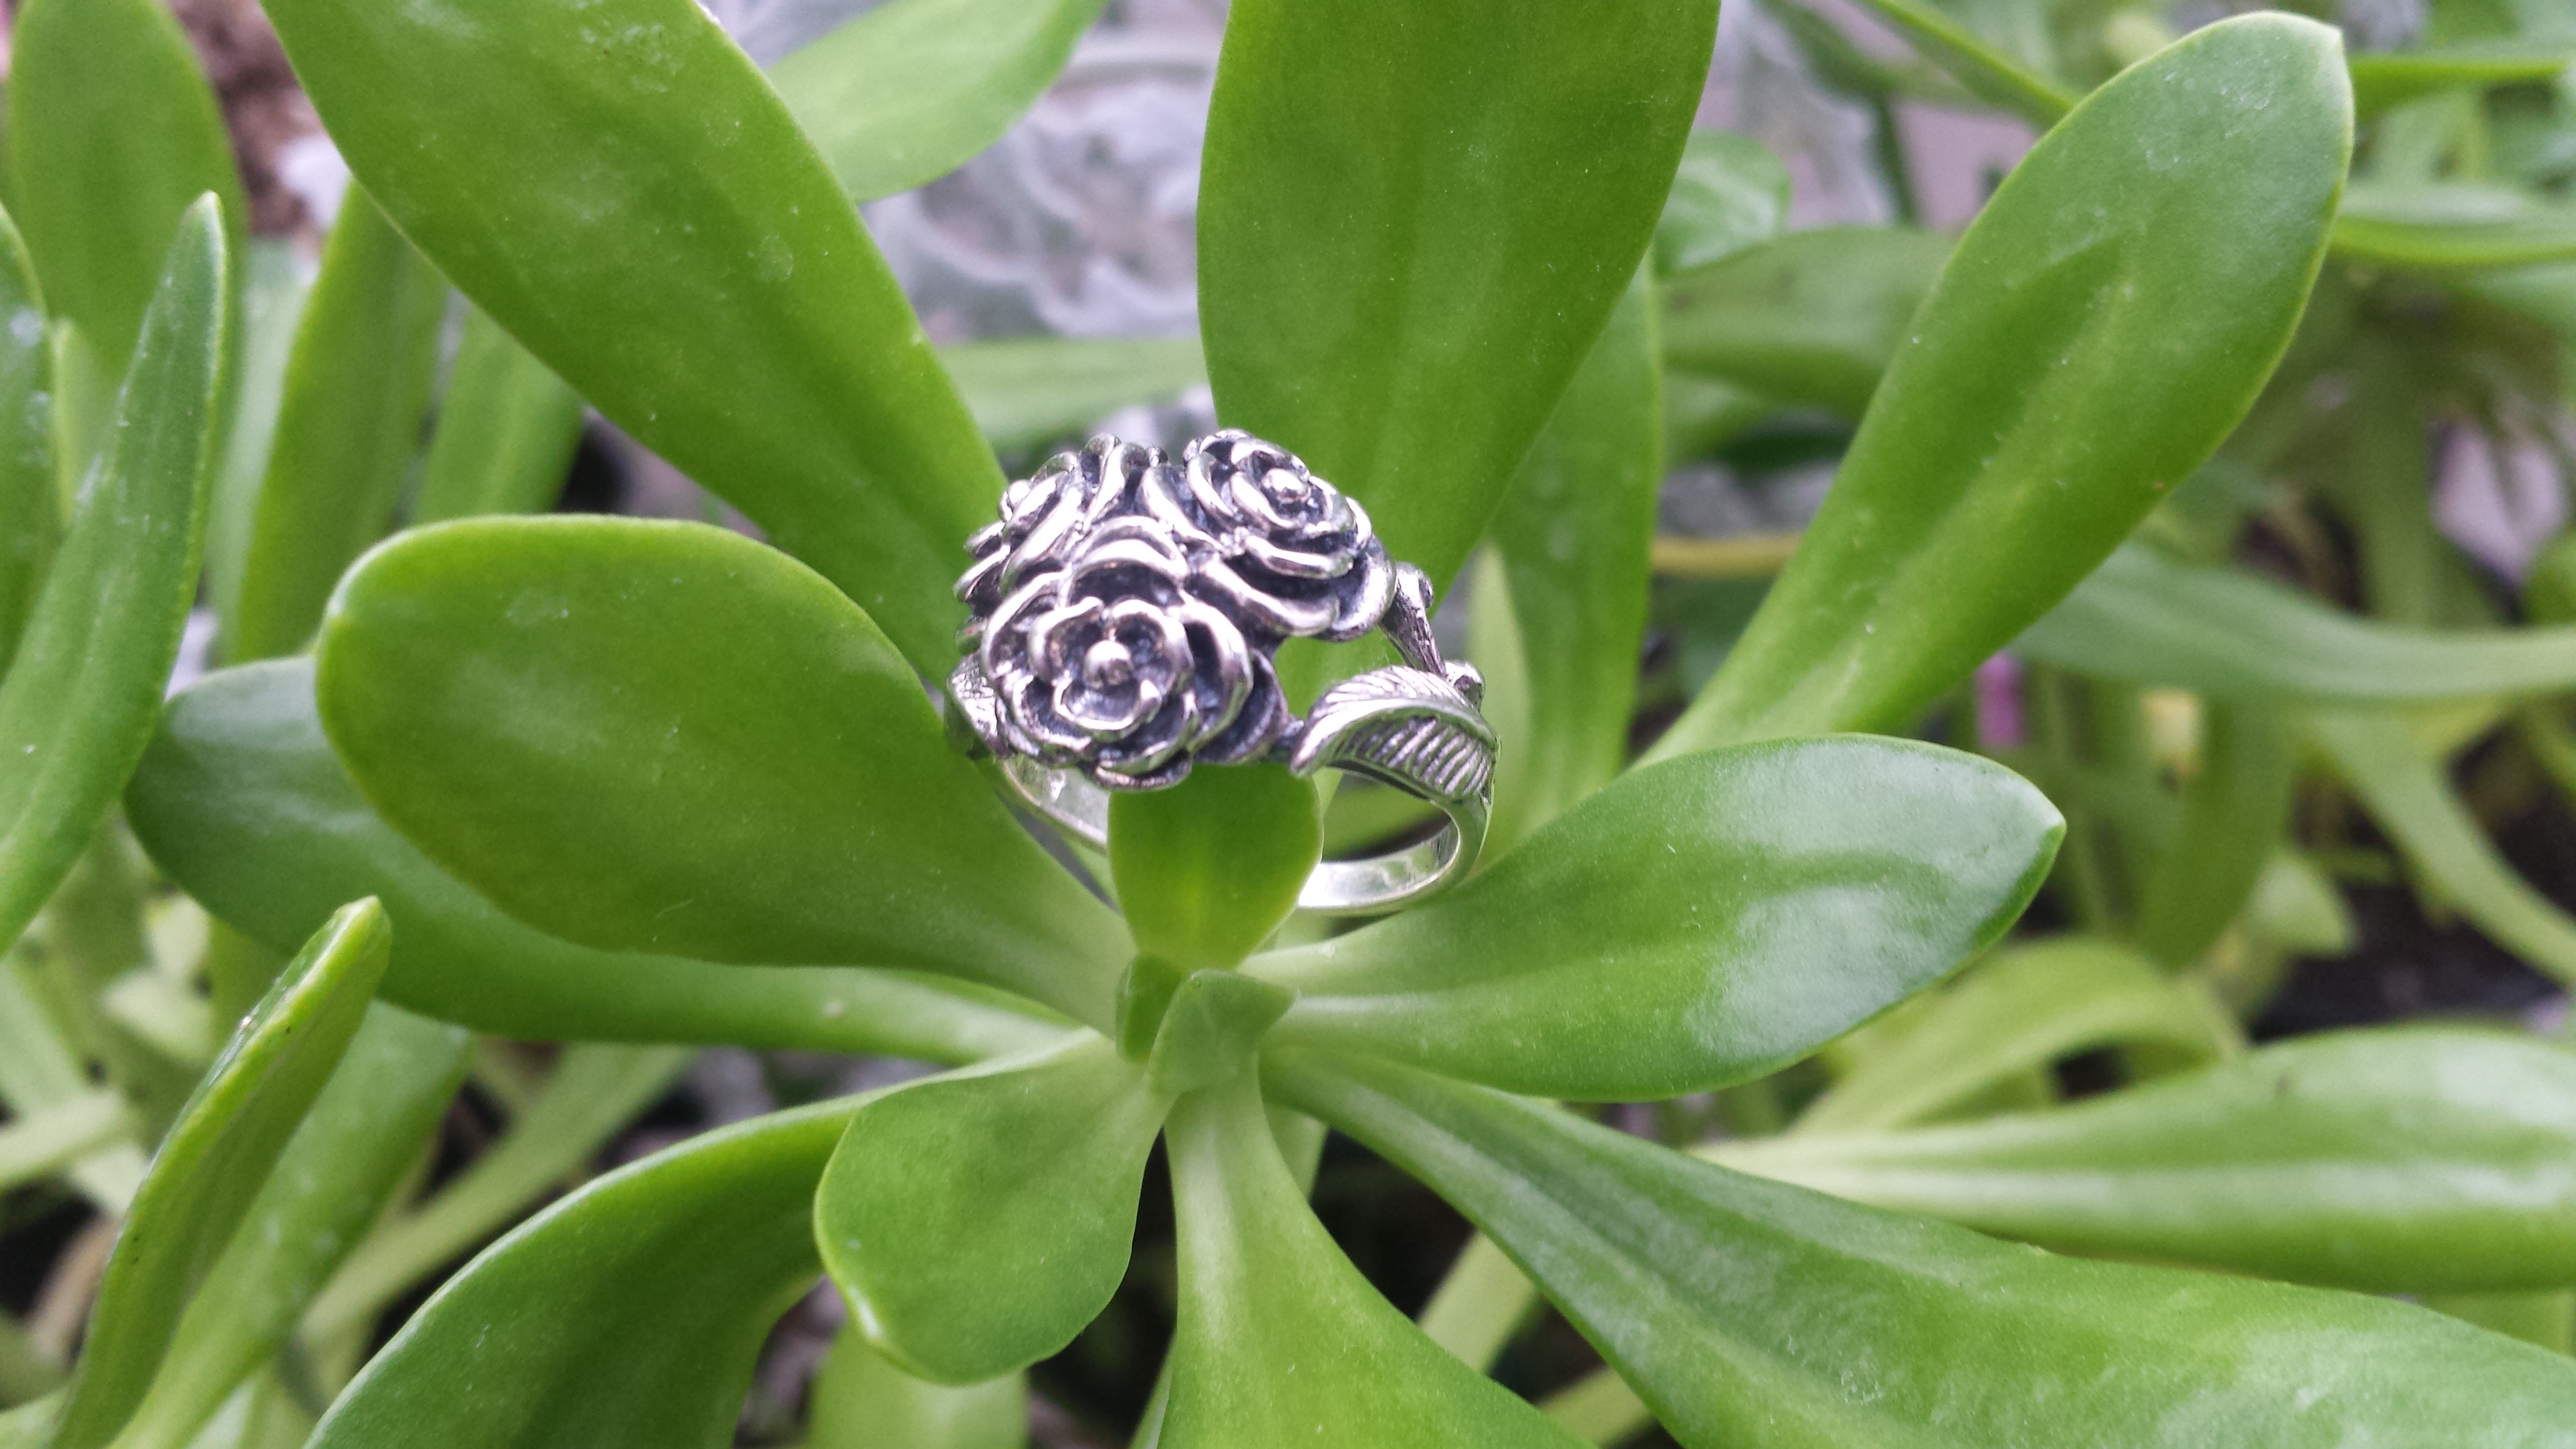 STUNNING TRIPLE ROSE RING WITH 925 STERLING SILVER. 7 G